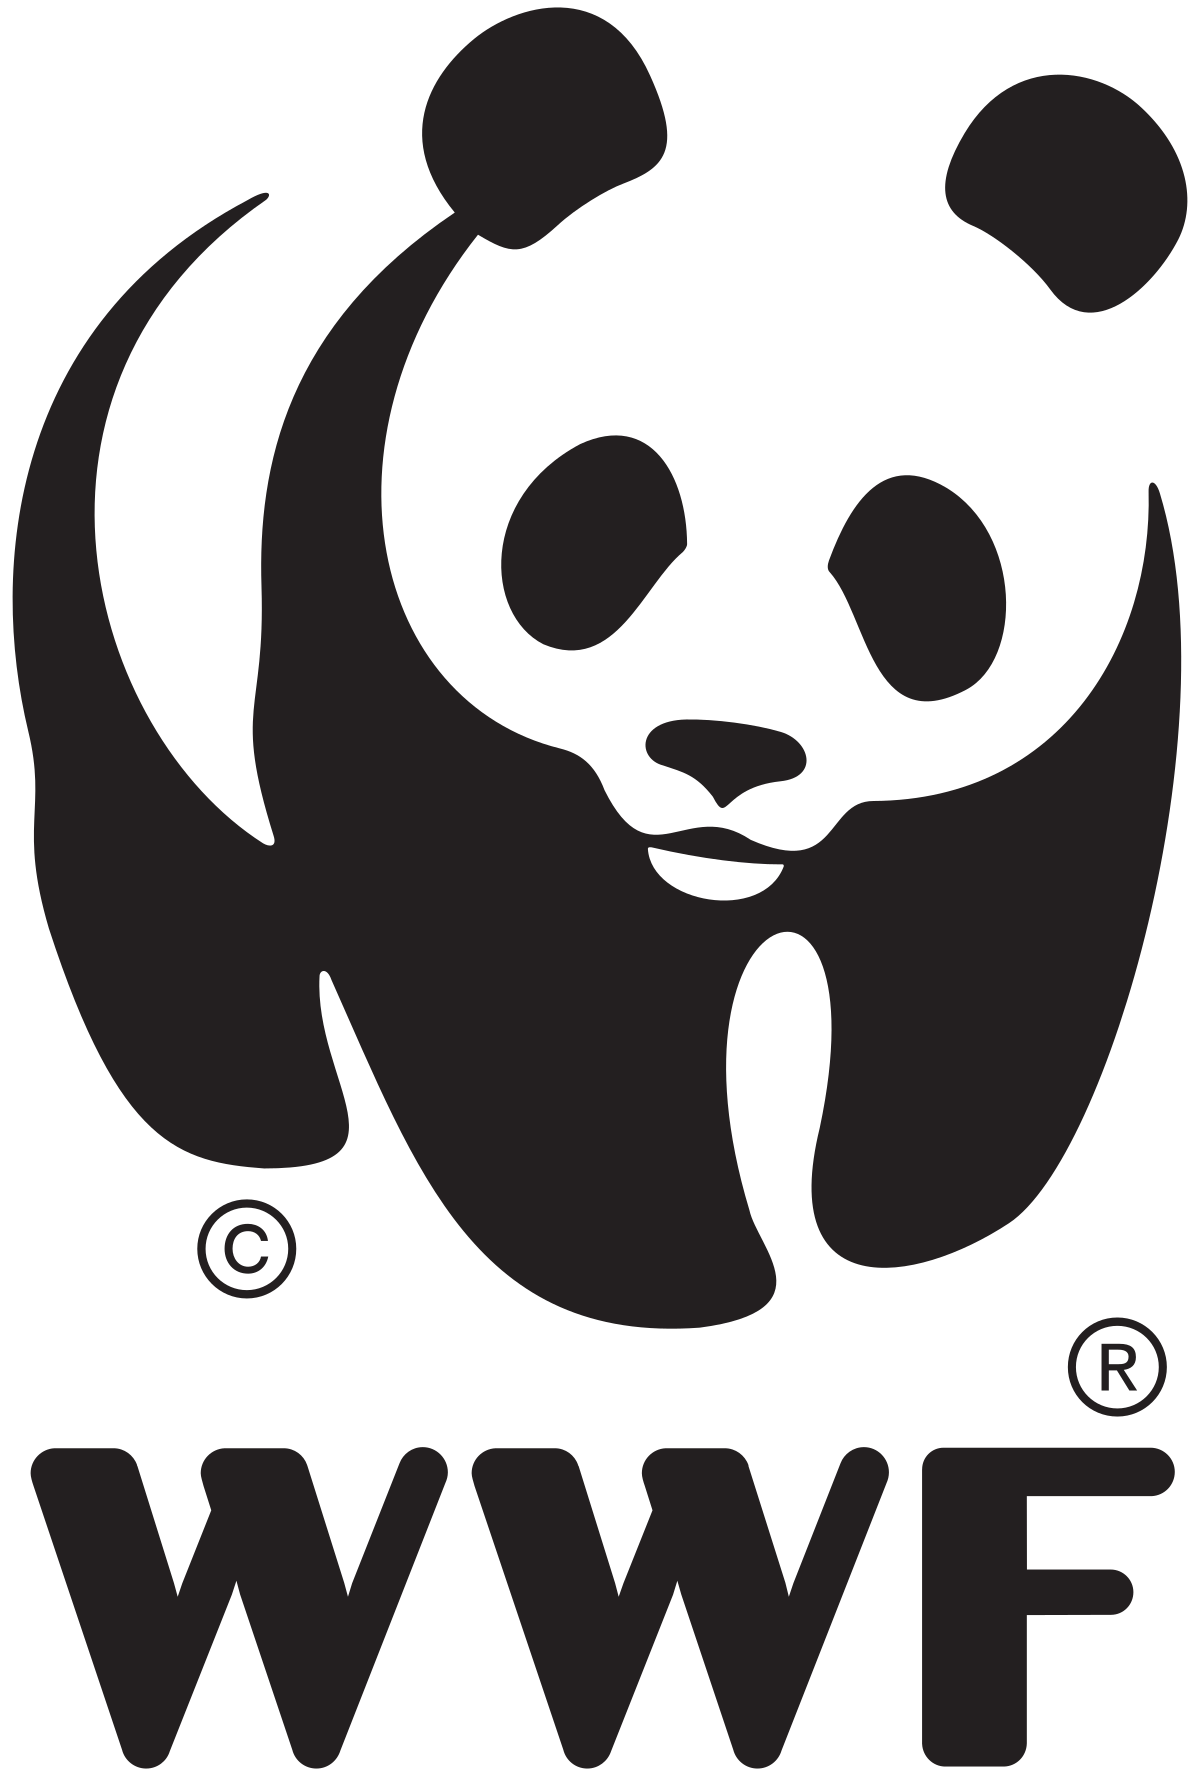 WWF Deutschland (World Wide Fund For Nature)